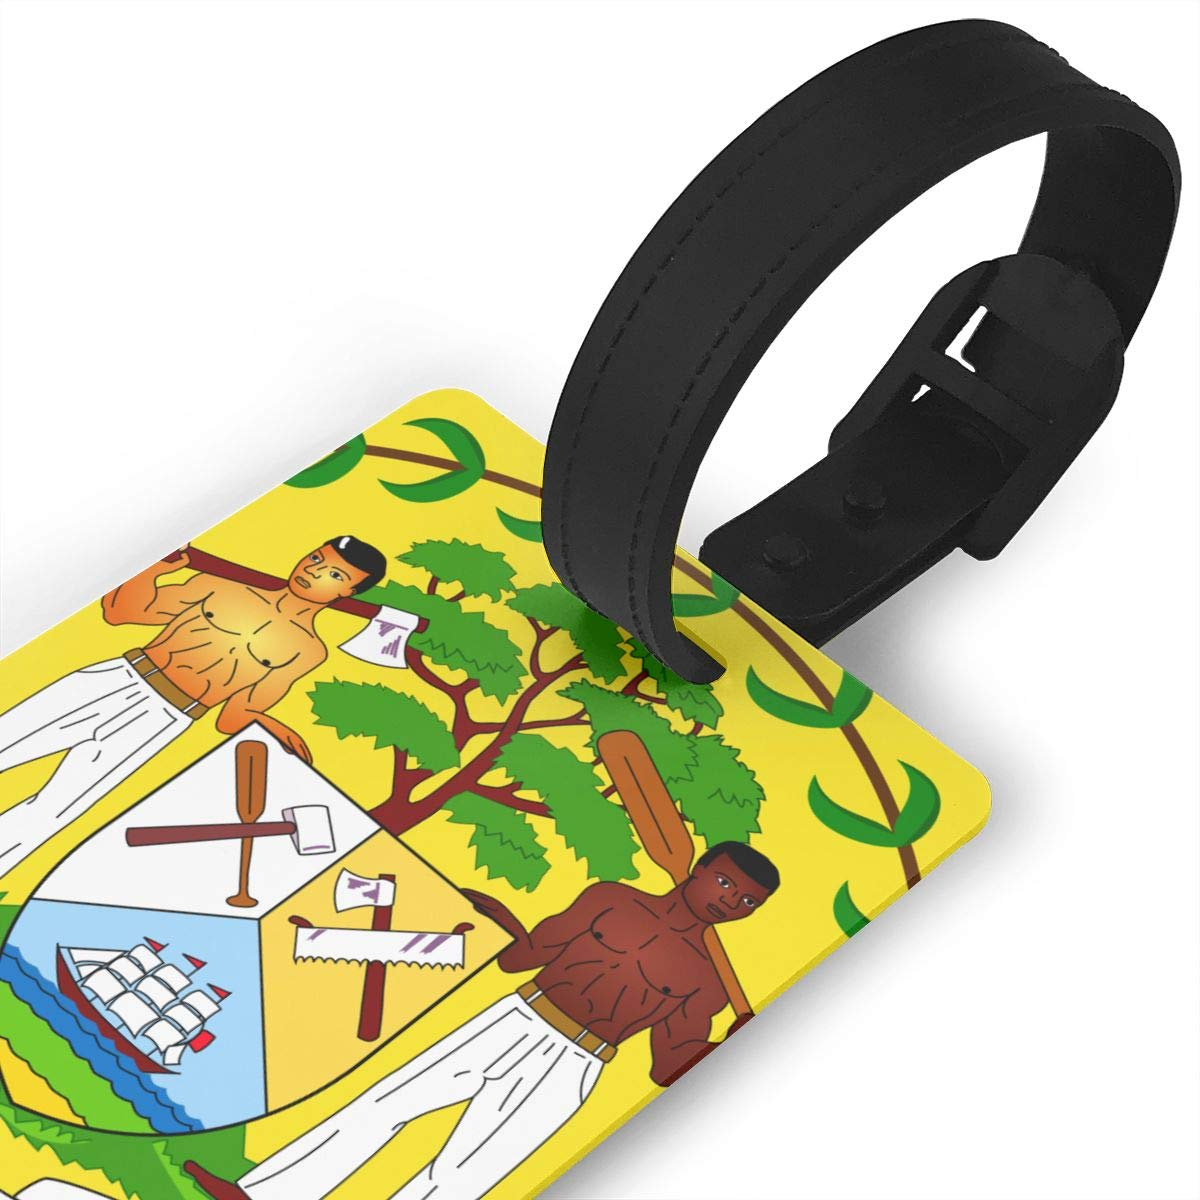 KODW12 Coat of Arms of Belize Luggage Tag Travel Bag Labels Suitcase Bag Tag Name Address Cards by KODW12 (Image #3)